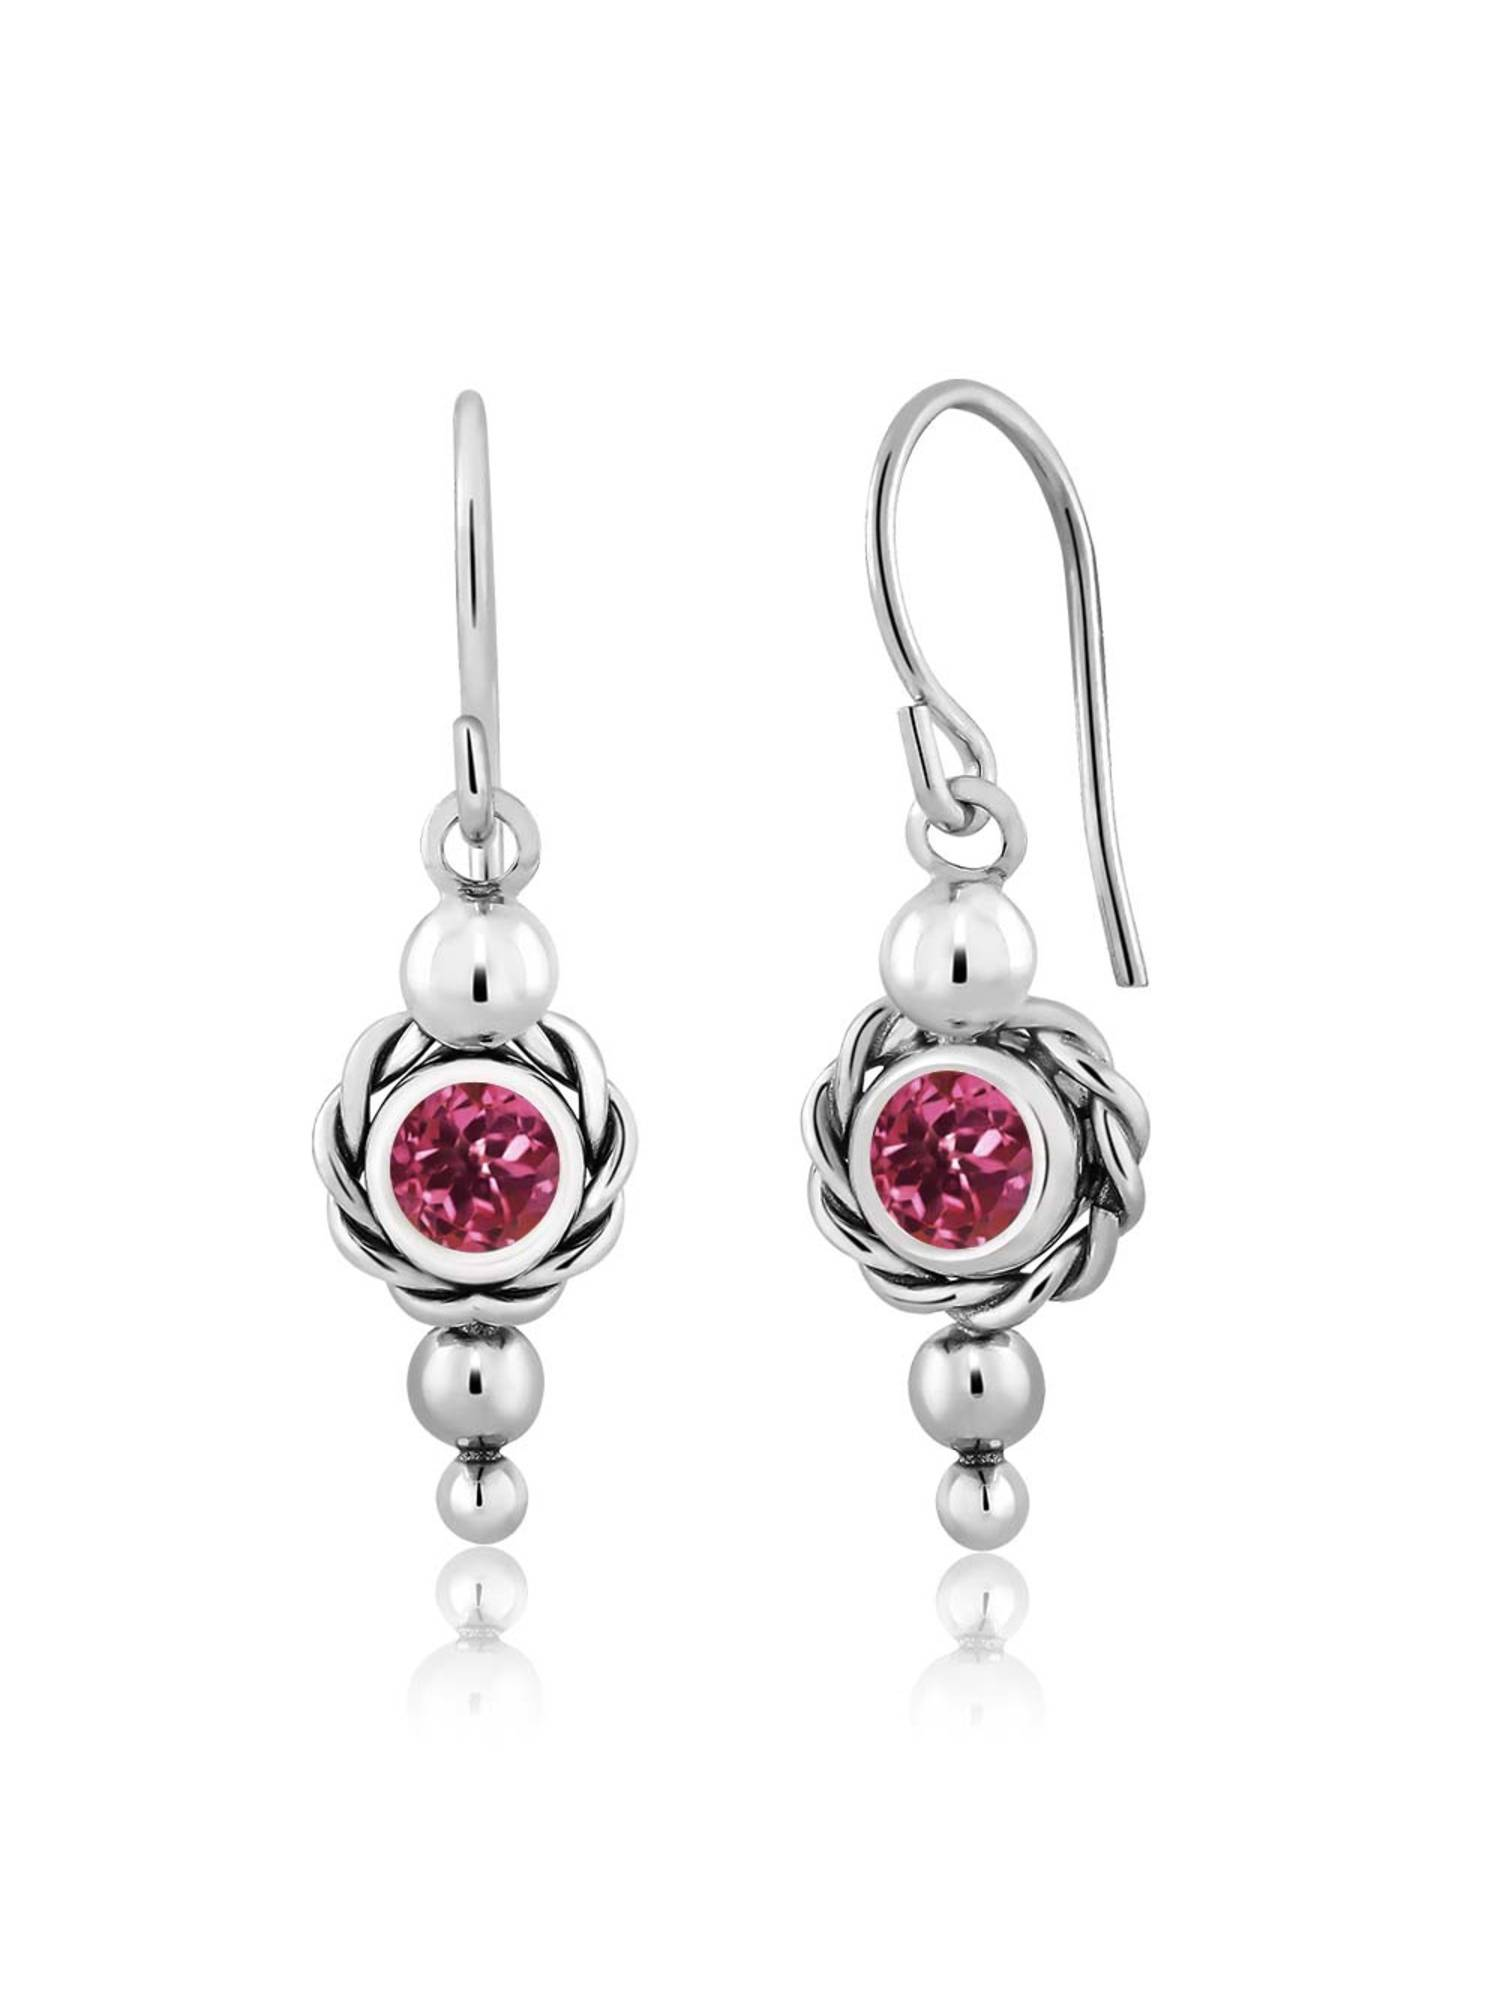 1.00 Ct Round Pink Tourmaline 925 Sterling Silver Earrings by